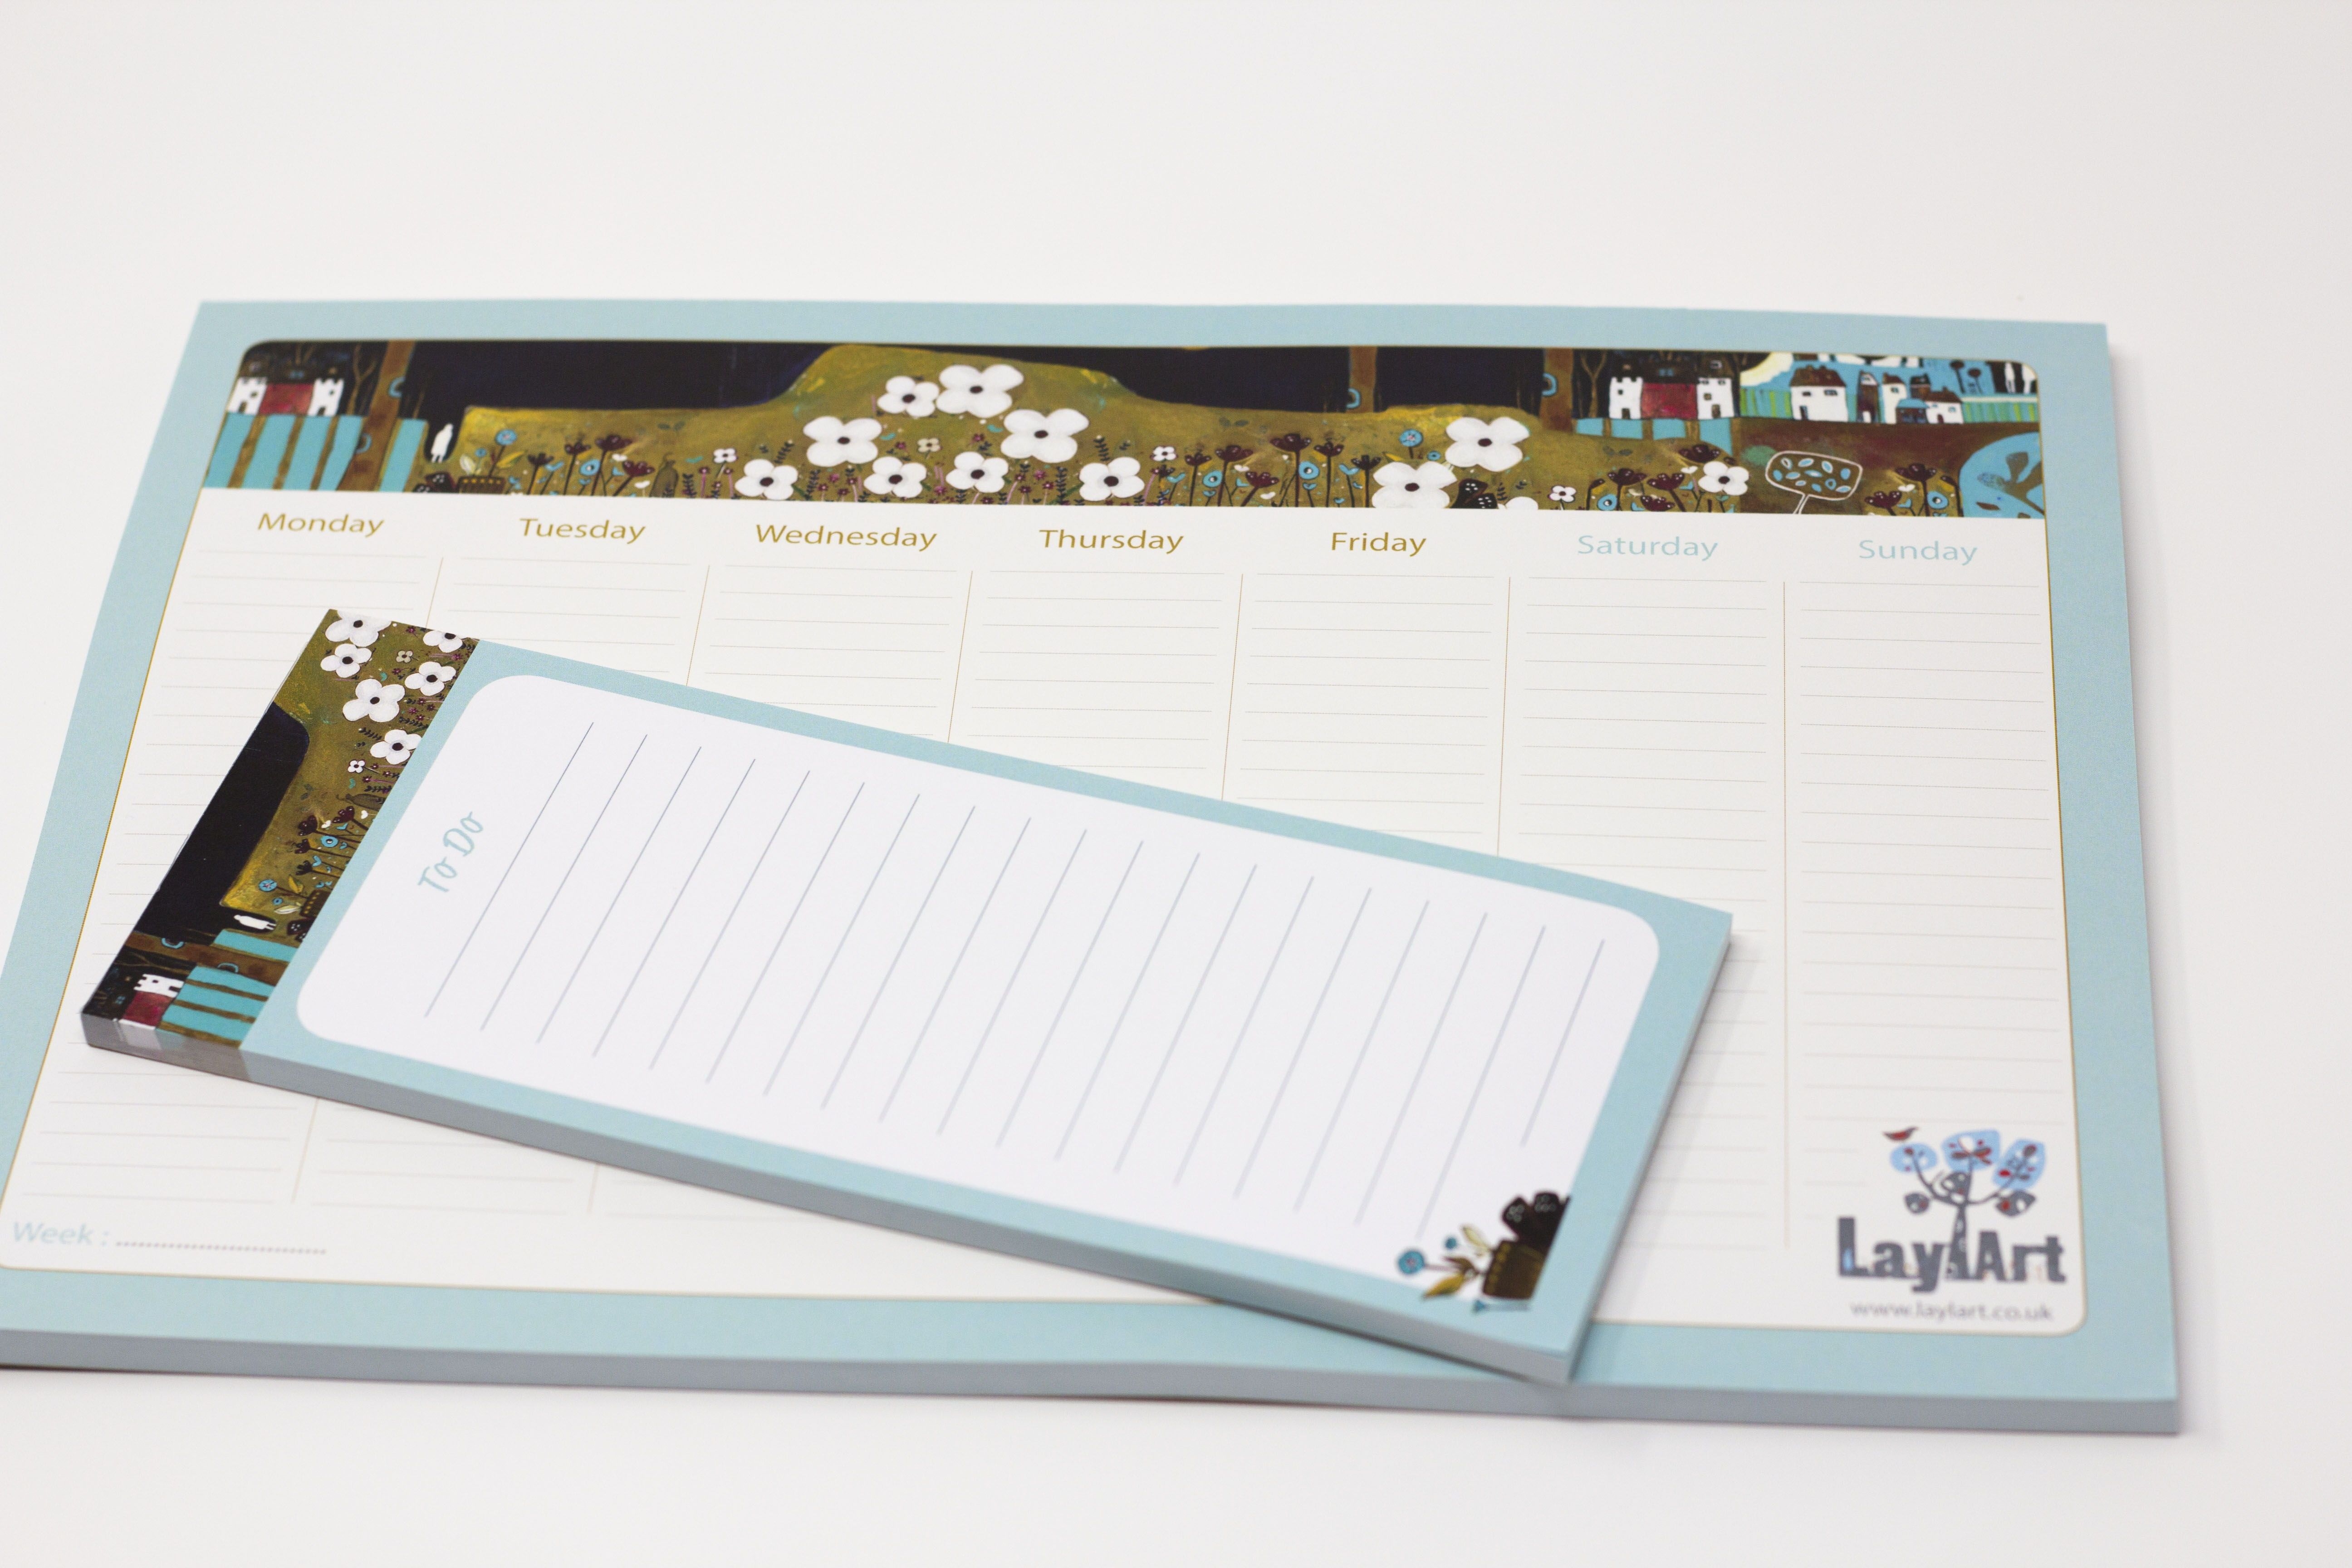 Weekly To Do List Weekly Desk Planner Desk Pad Planner Weekly Planner Pad Stationery Office Gift Employee Gifts Planner Pads Gift Idea Weekly Planner Pad Gifts For Office Weekly Planner